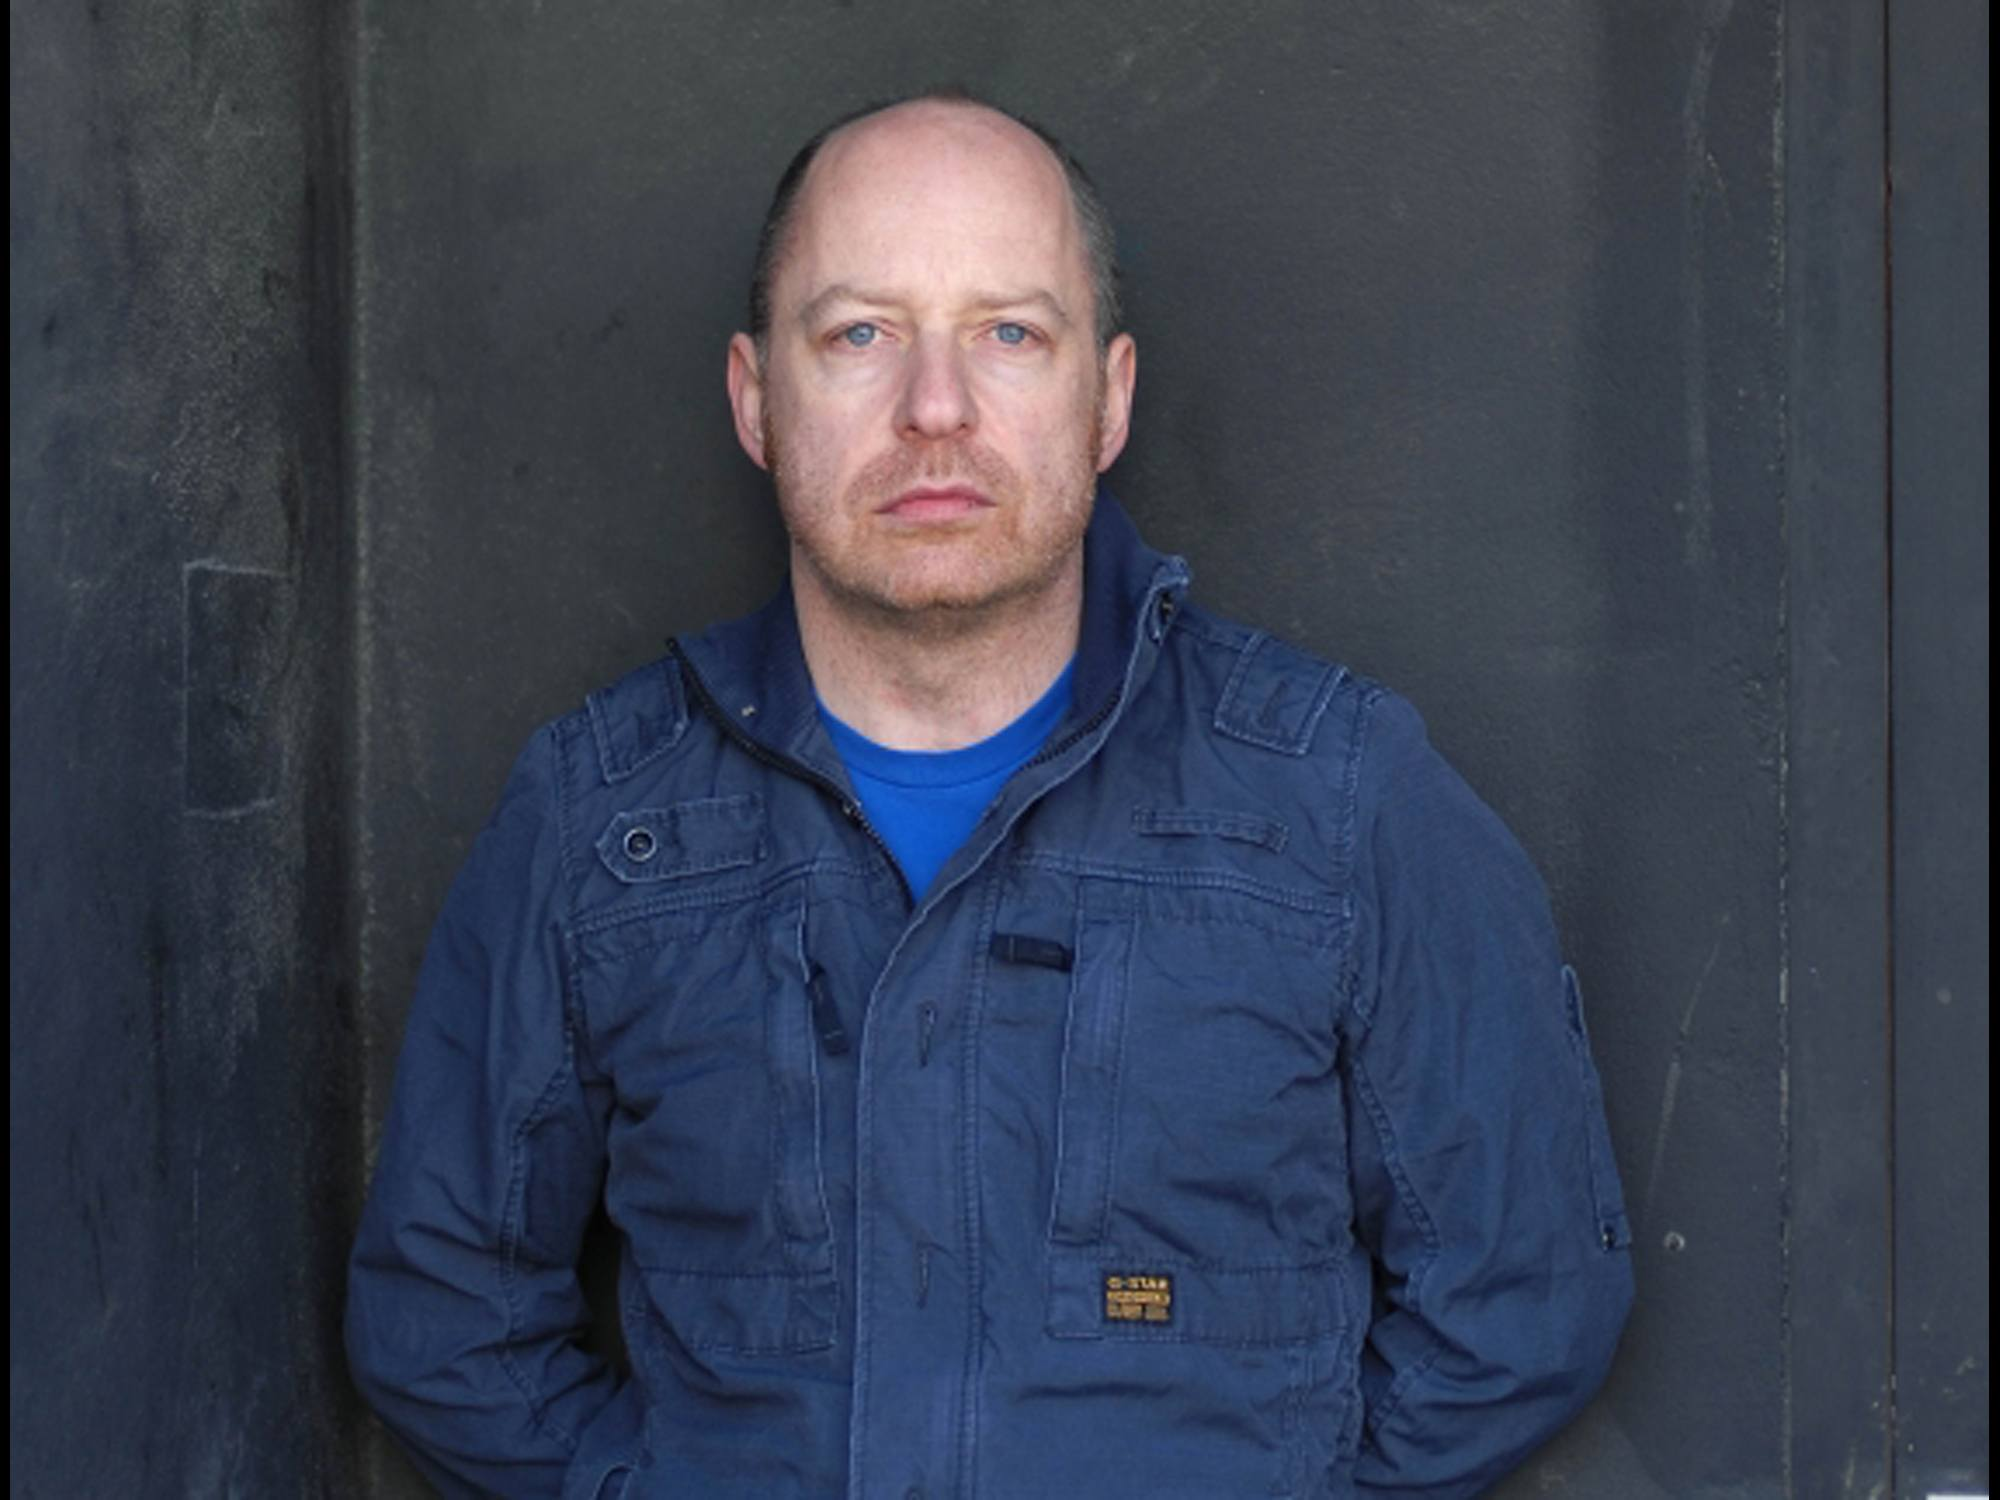 An image of Tim Etchells. He is a white man wearing a blue jacket.